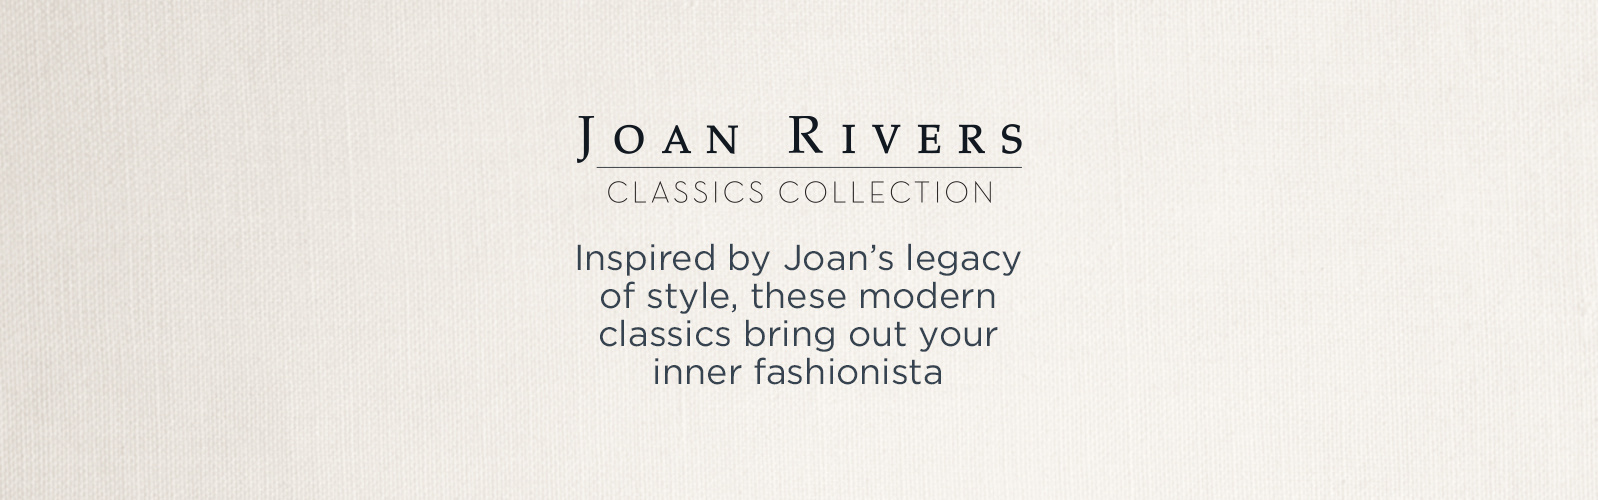 Joan Rivers Classics Collection. Inspired by Joan's legacy of style, these modern classics bring out your inner fashionista.